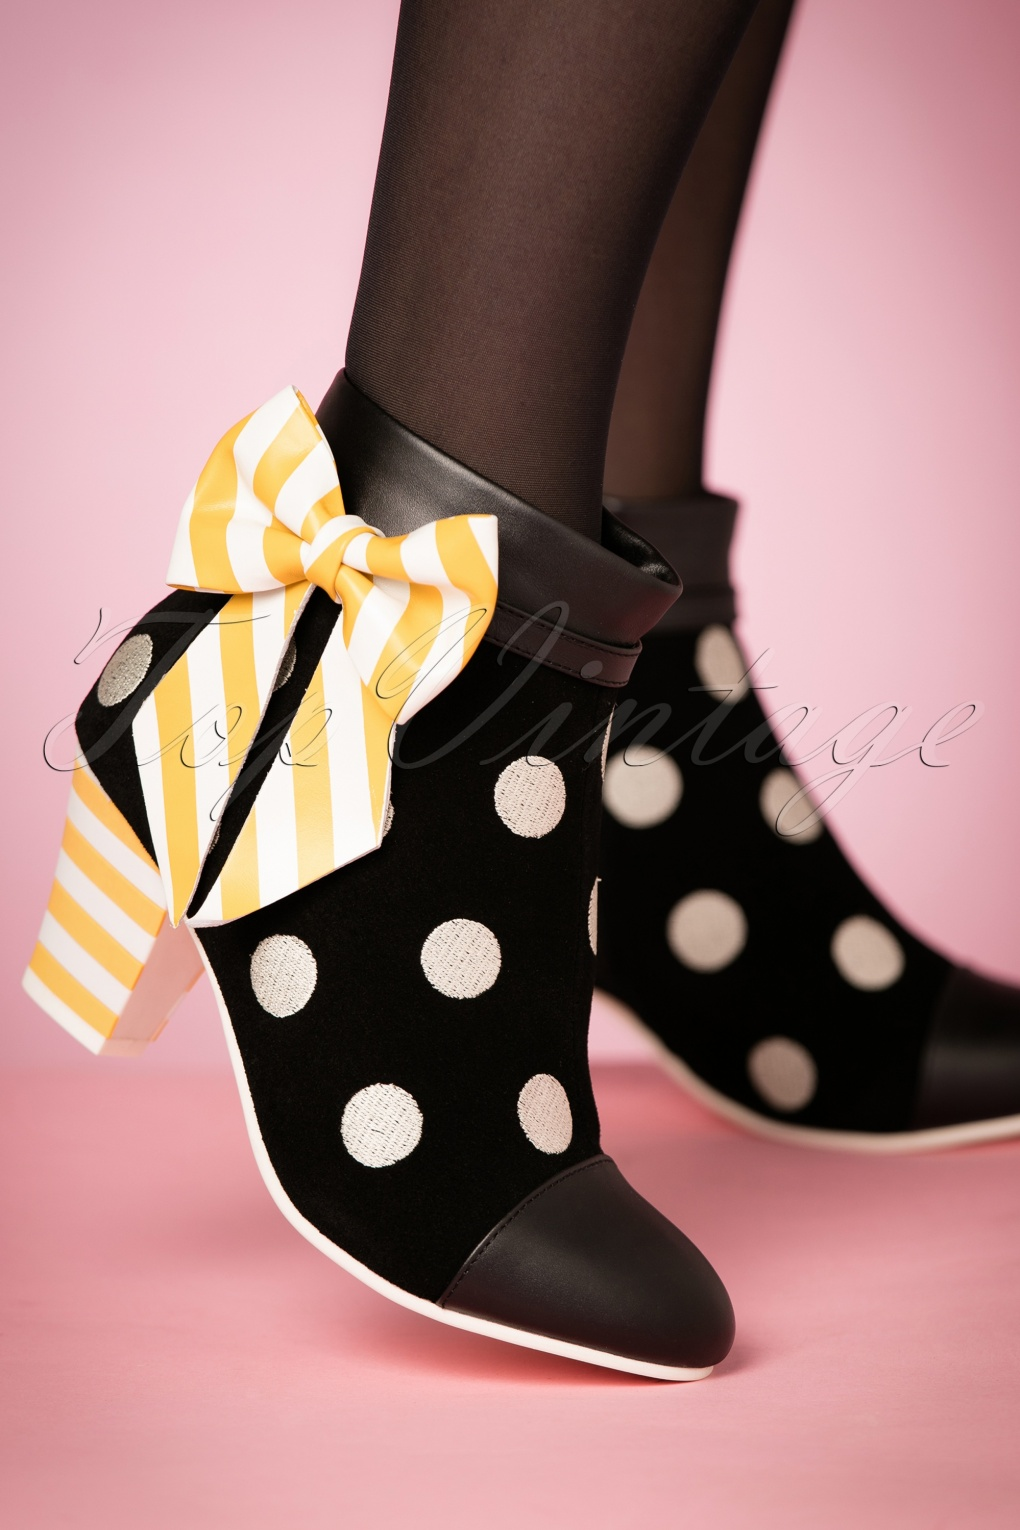 1960s Inspired Fashion: Recreate the Look 60s Elsie Devotion Polkadot Bootie in Black £176.46 AT vintagedancer.com